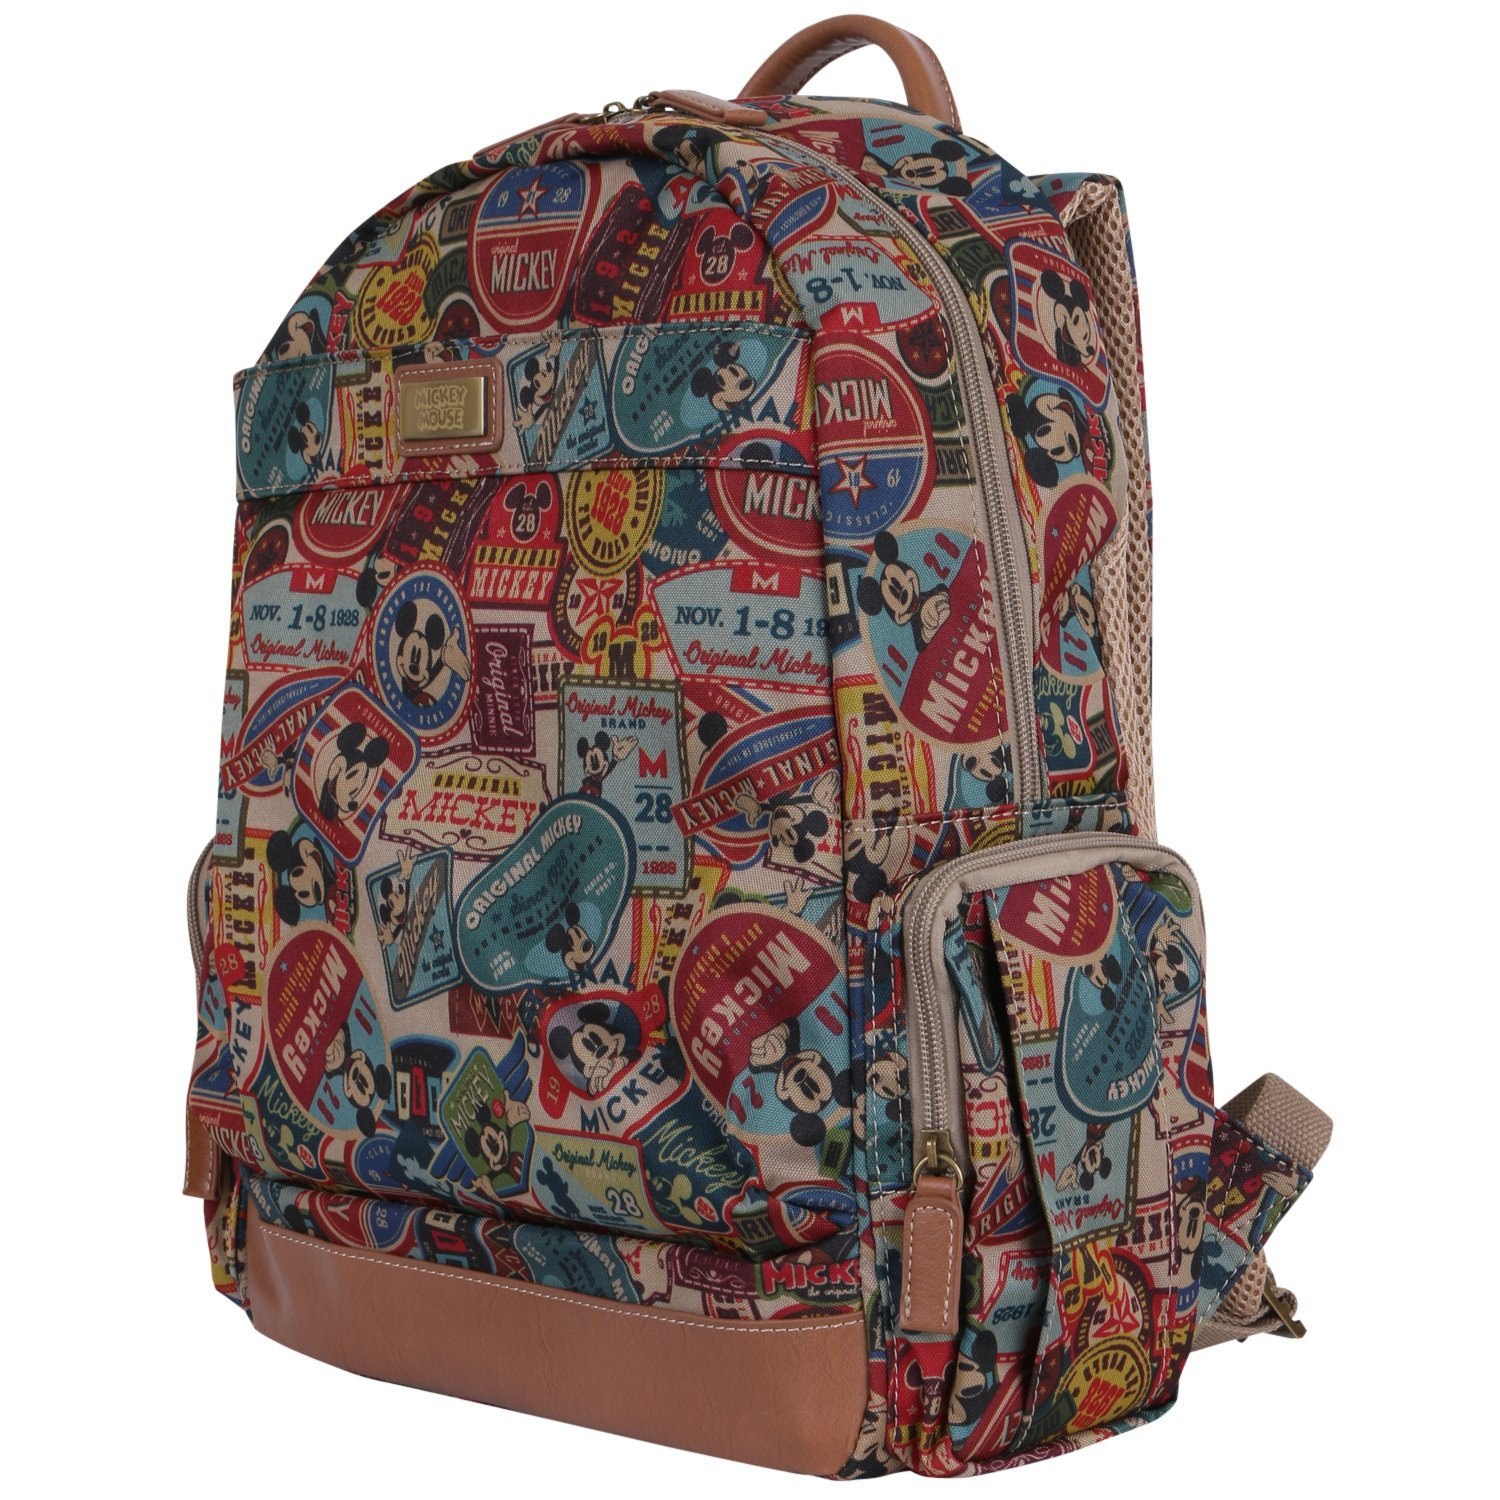 de49f91ba0c Get Quotations · Disney Vintage Style Mickey Mouse Pattern Mesh Multi  Purpose Backpack Rucksack